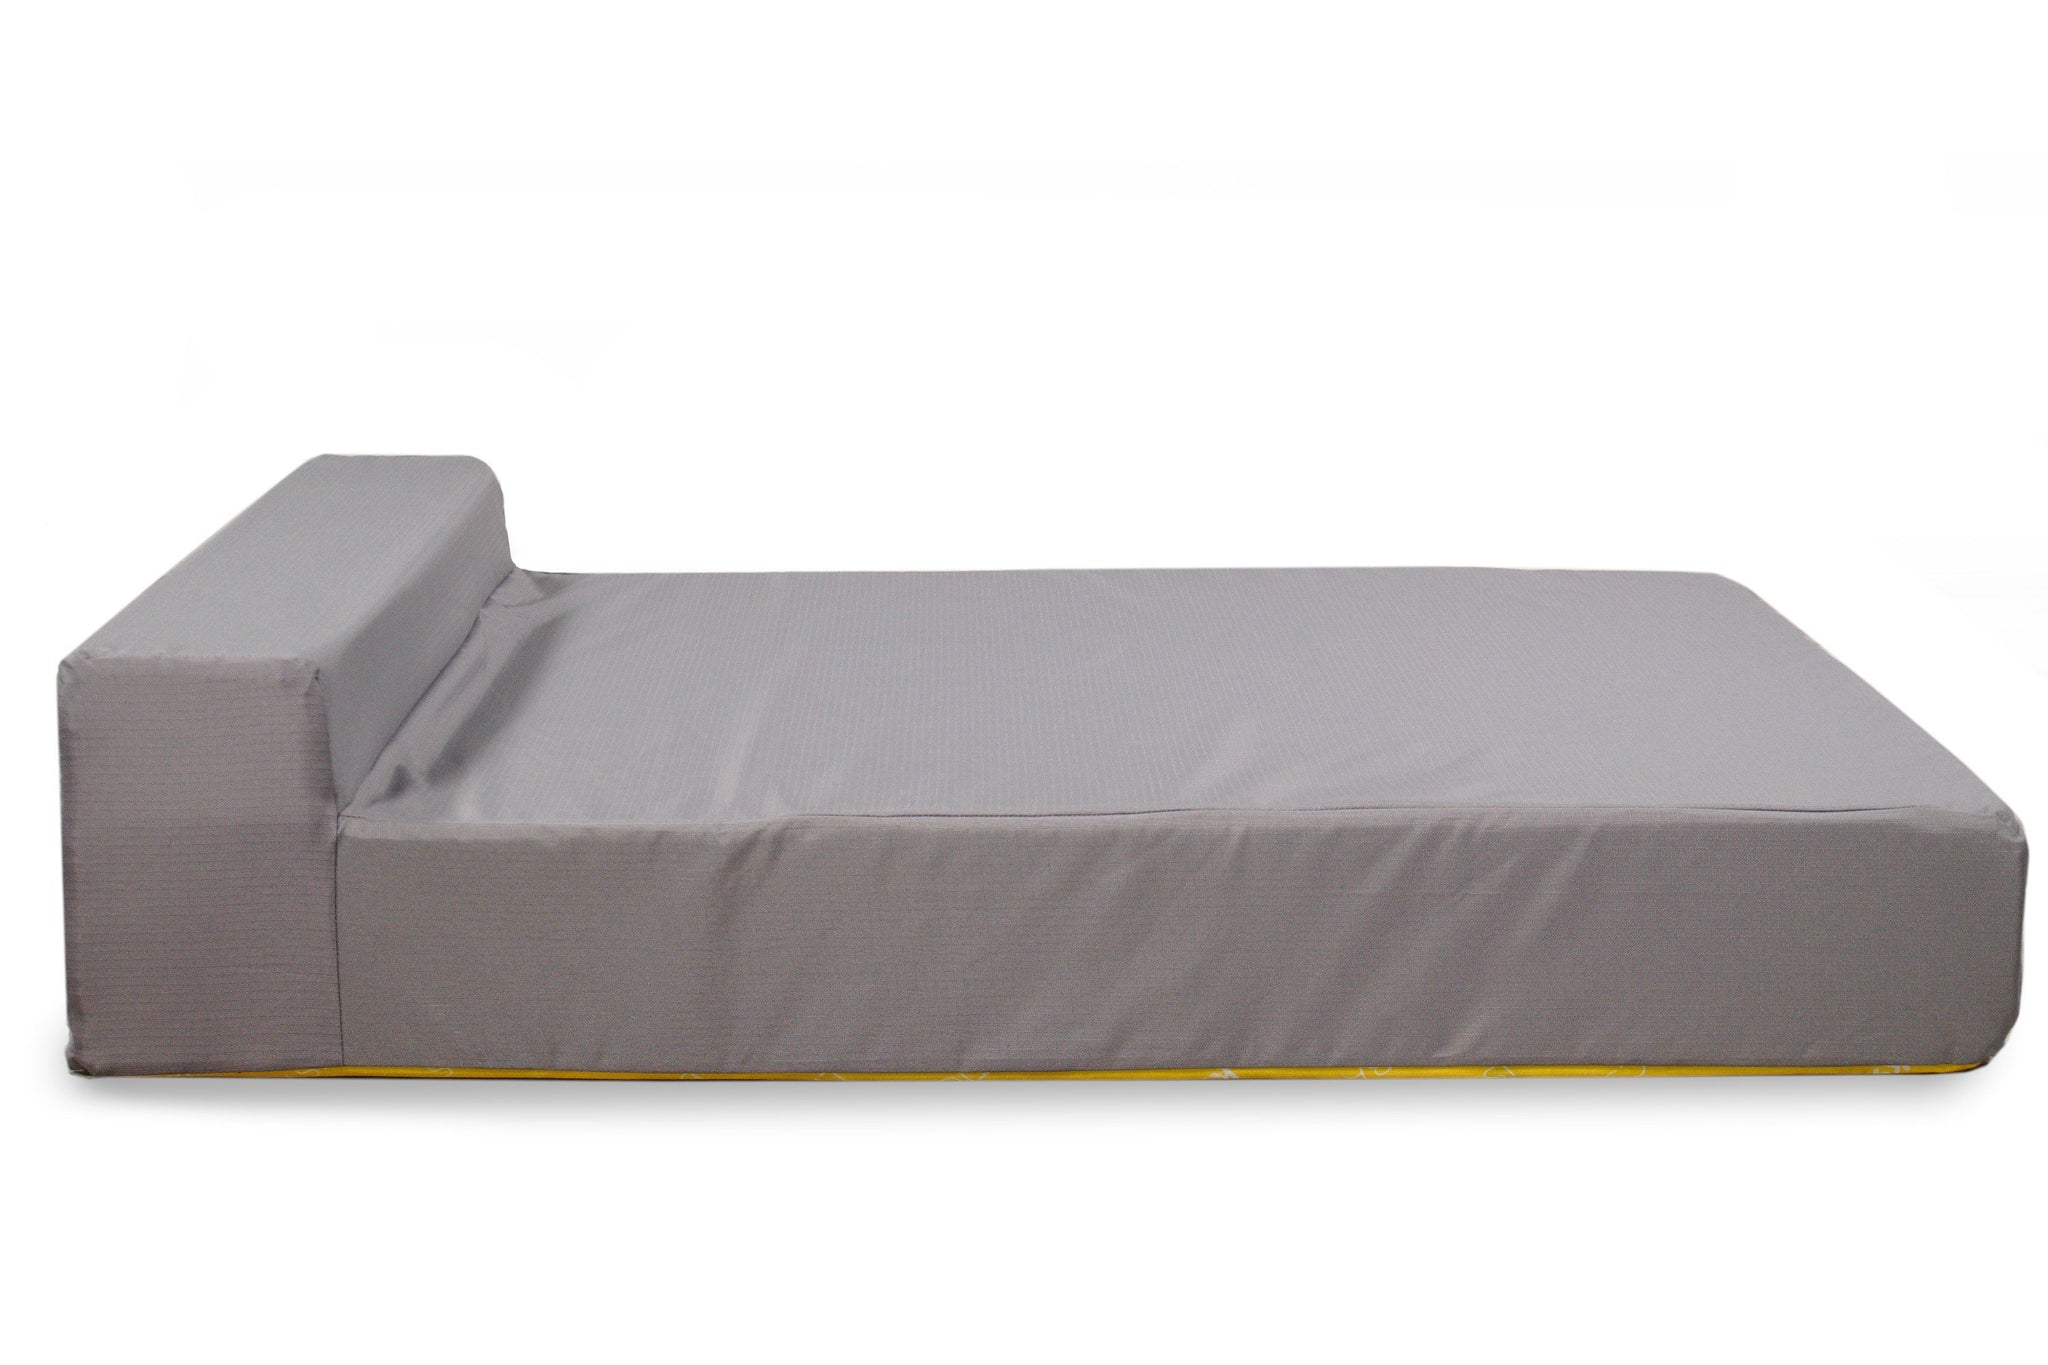 A gray K9 Ballistics mattress without a cover on a dark wooden floor